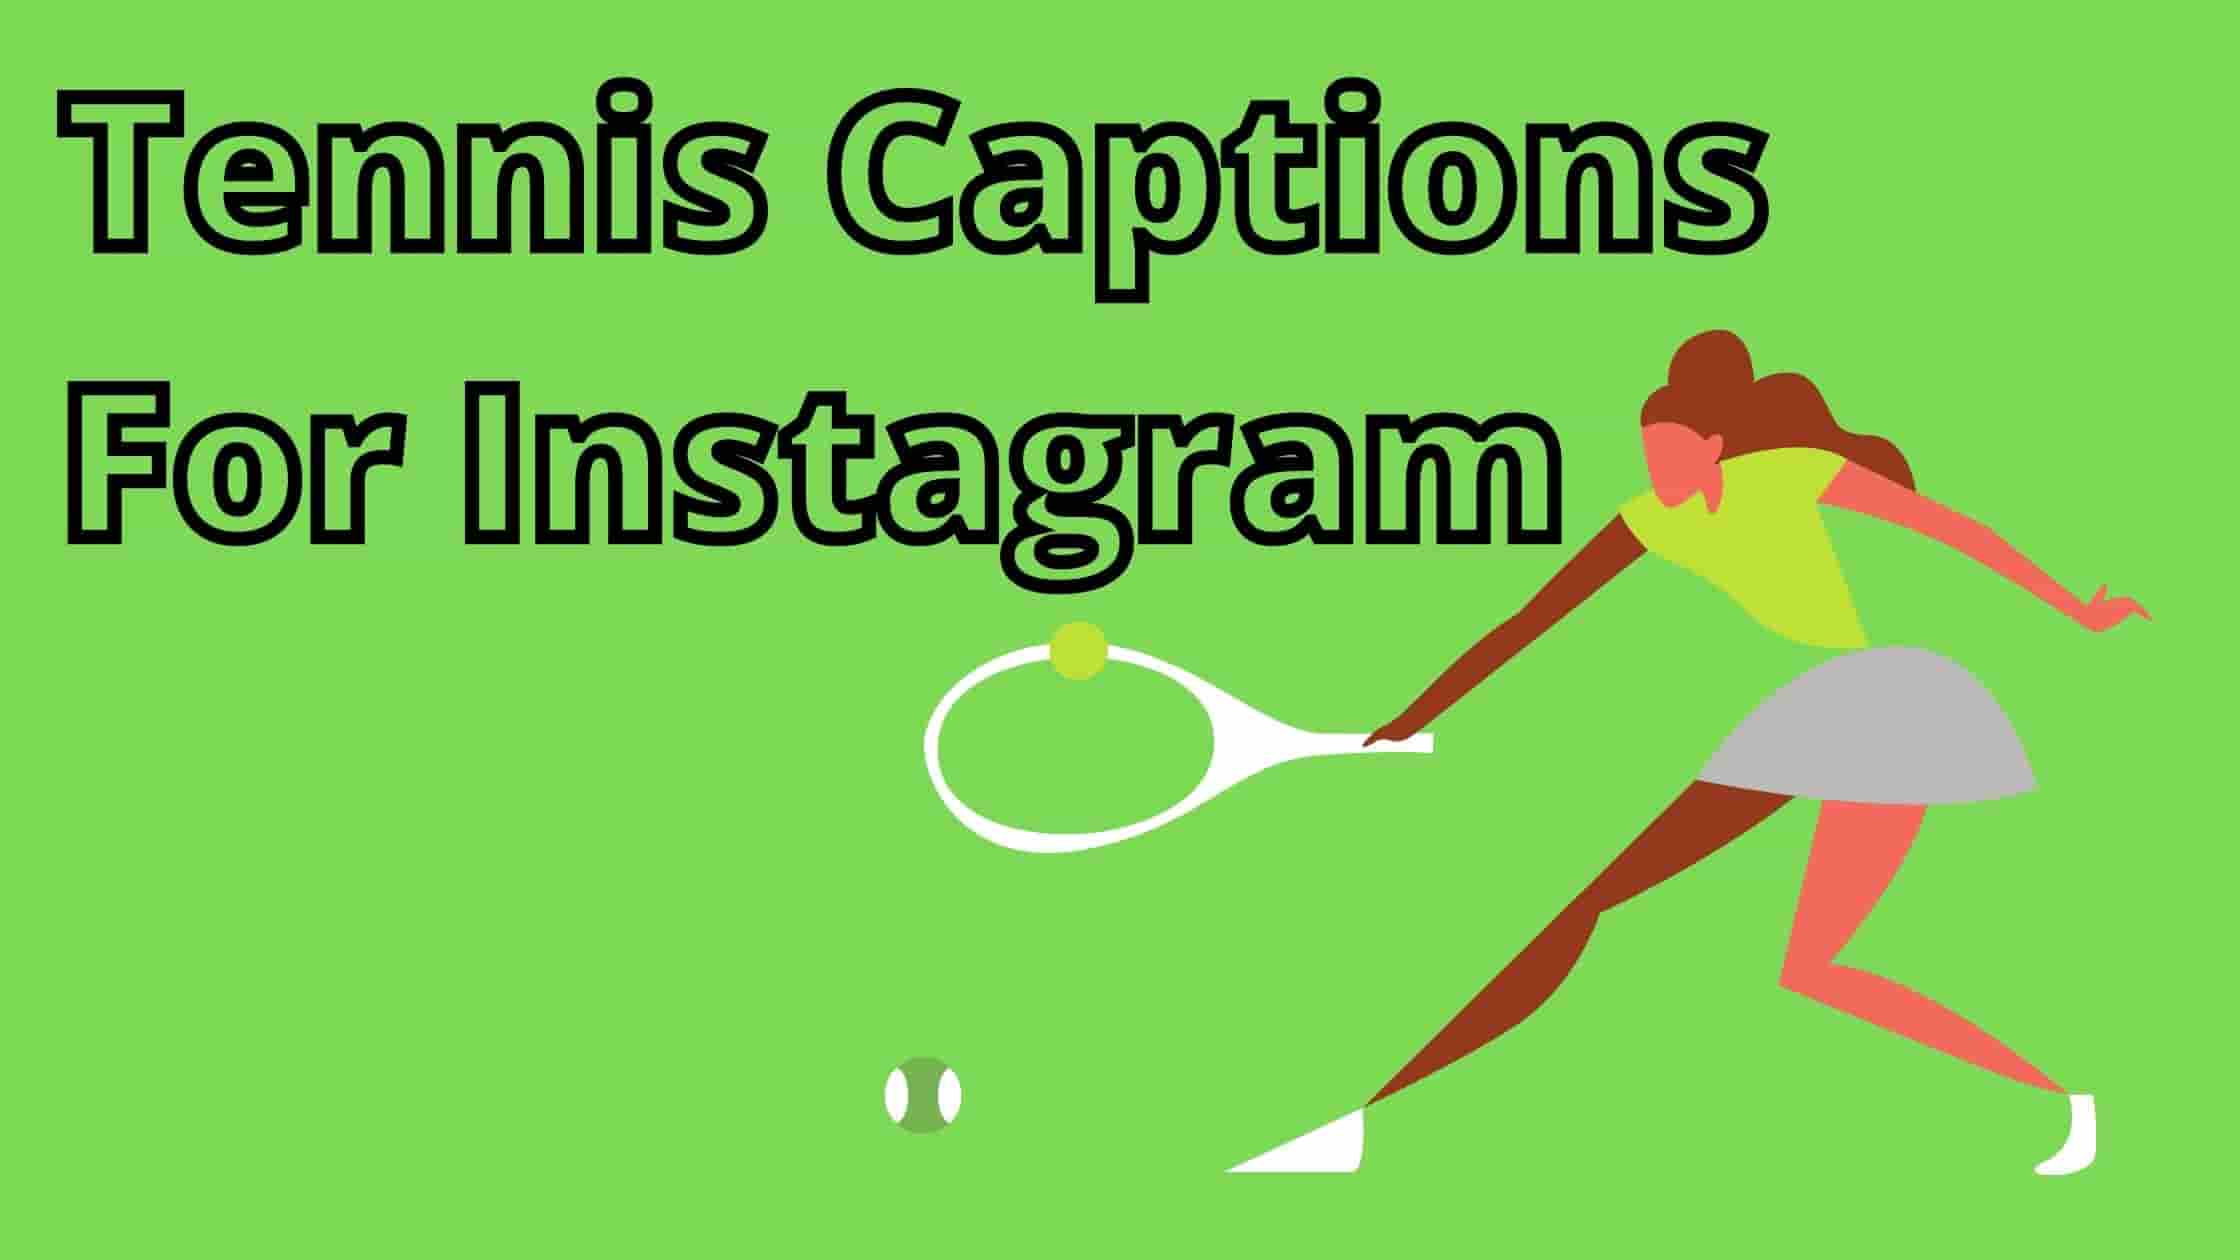 Tennis Captions For Instagram